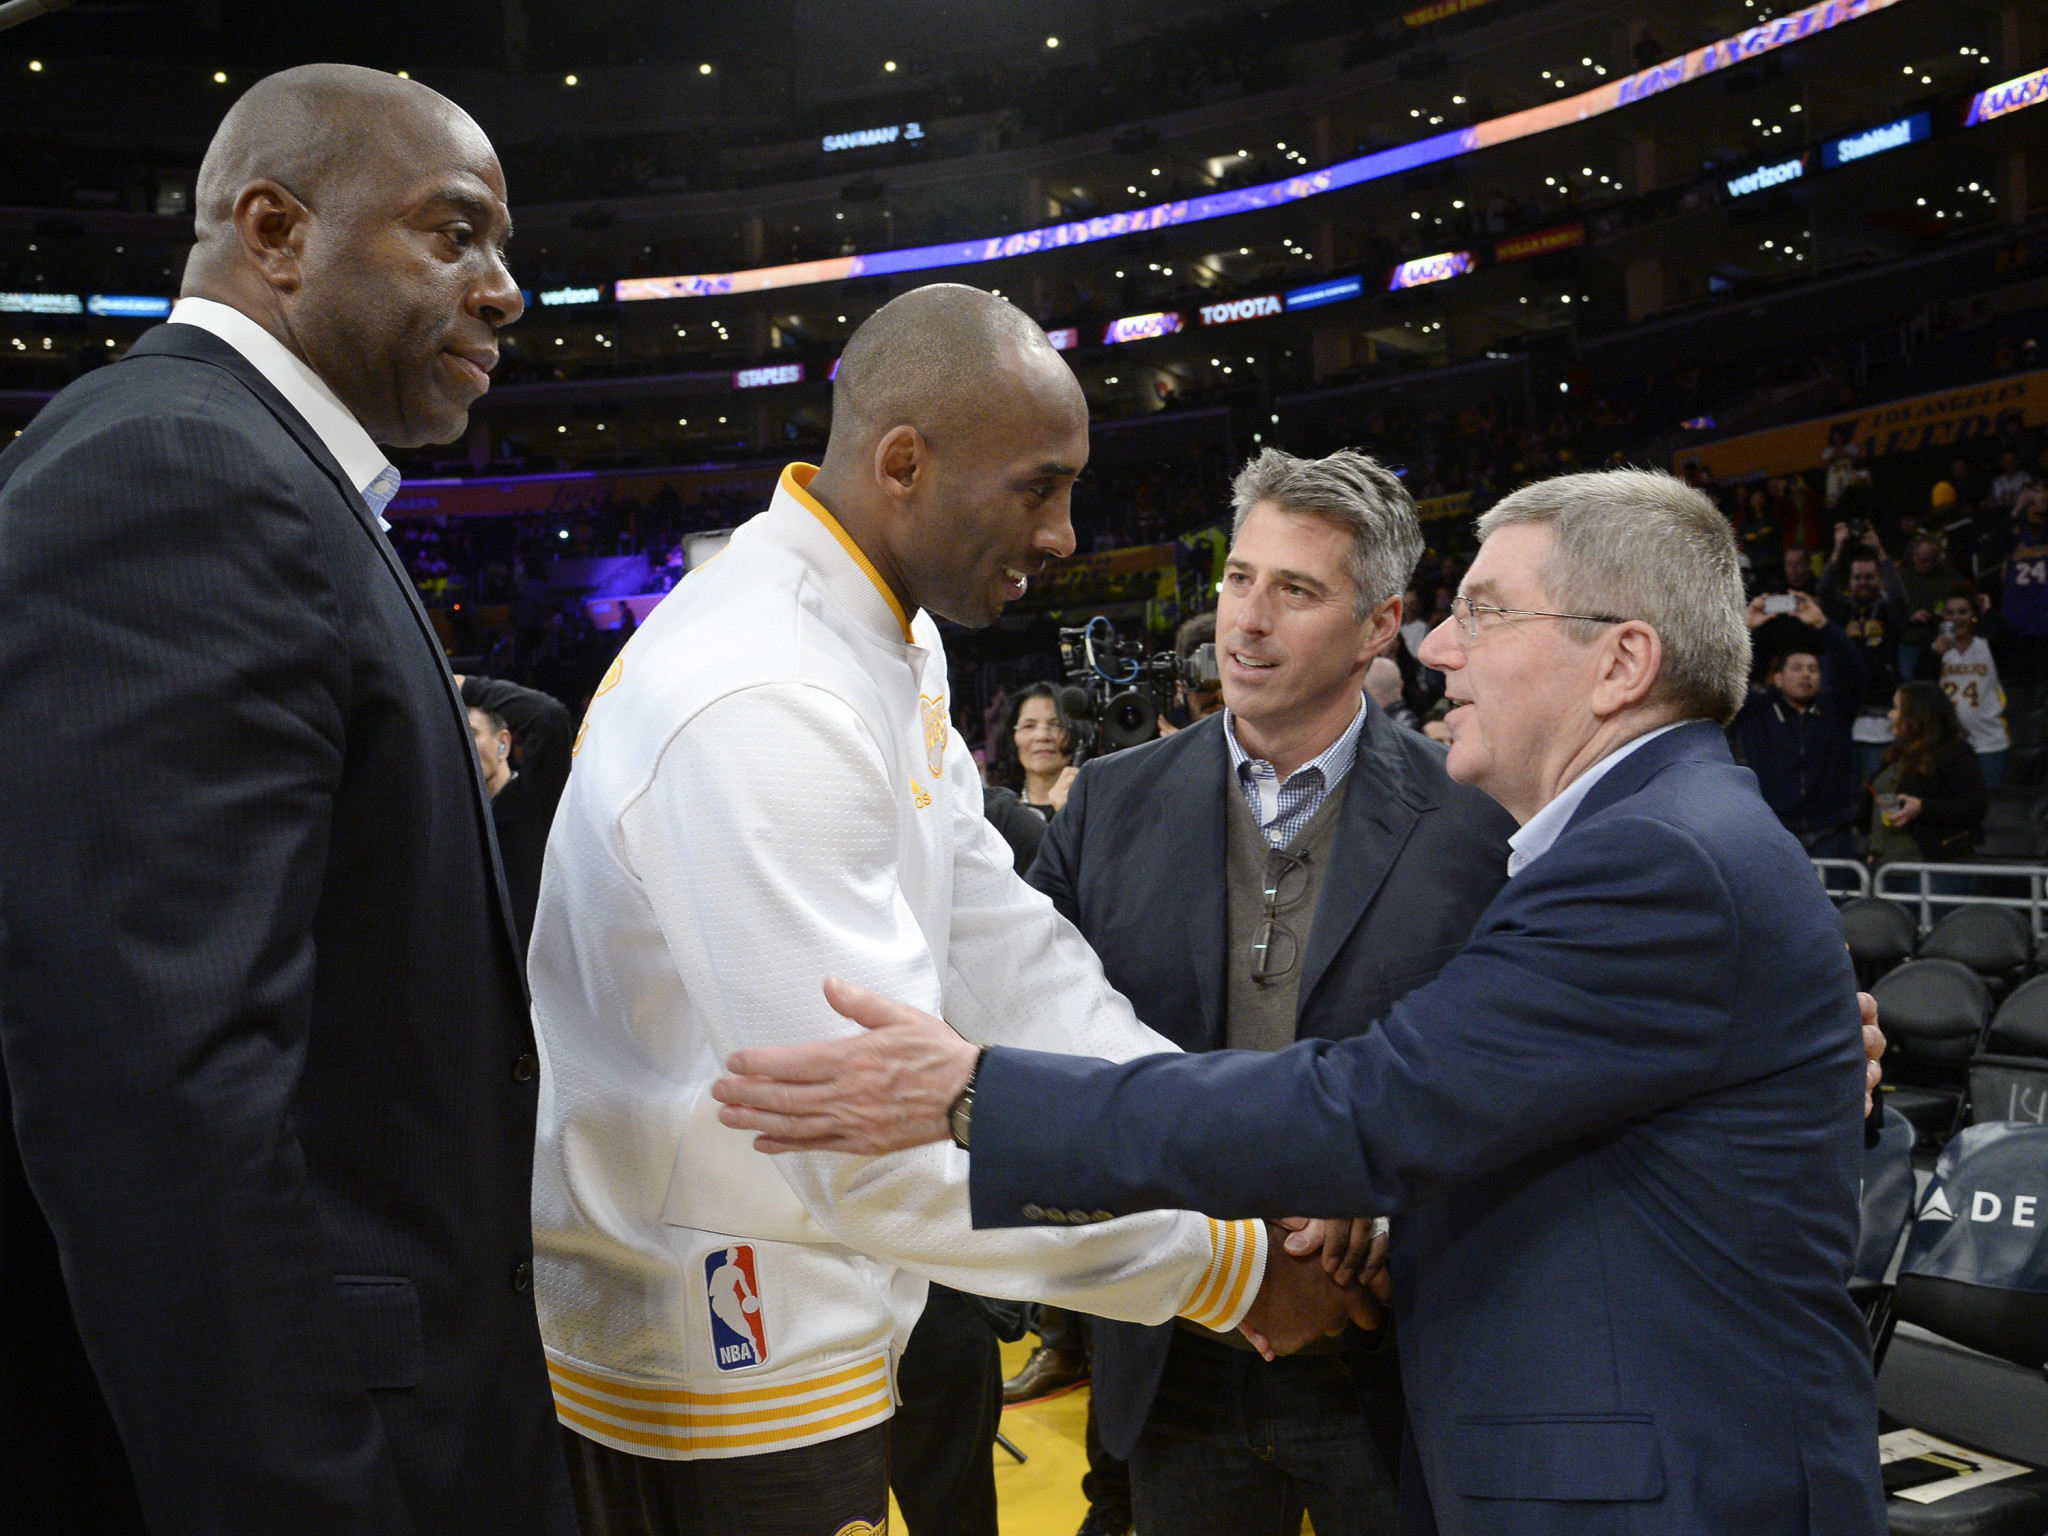 Thomas Bach, right, pictured meeting basketball superstar Kobe Bryant during a visit to Los Angeles in 2016 ©Getty Images